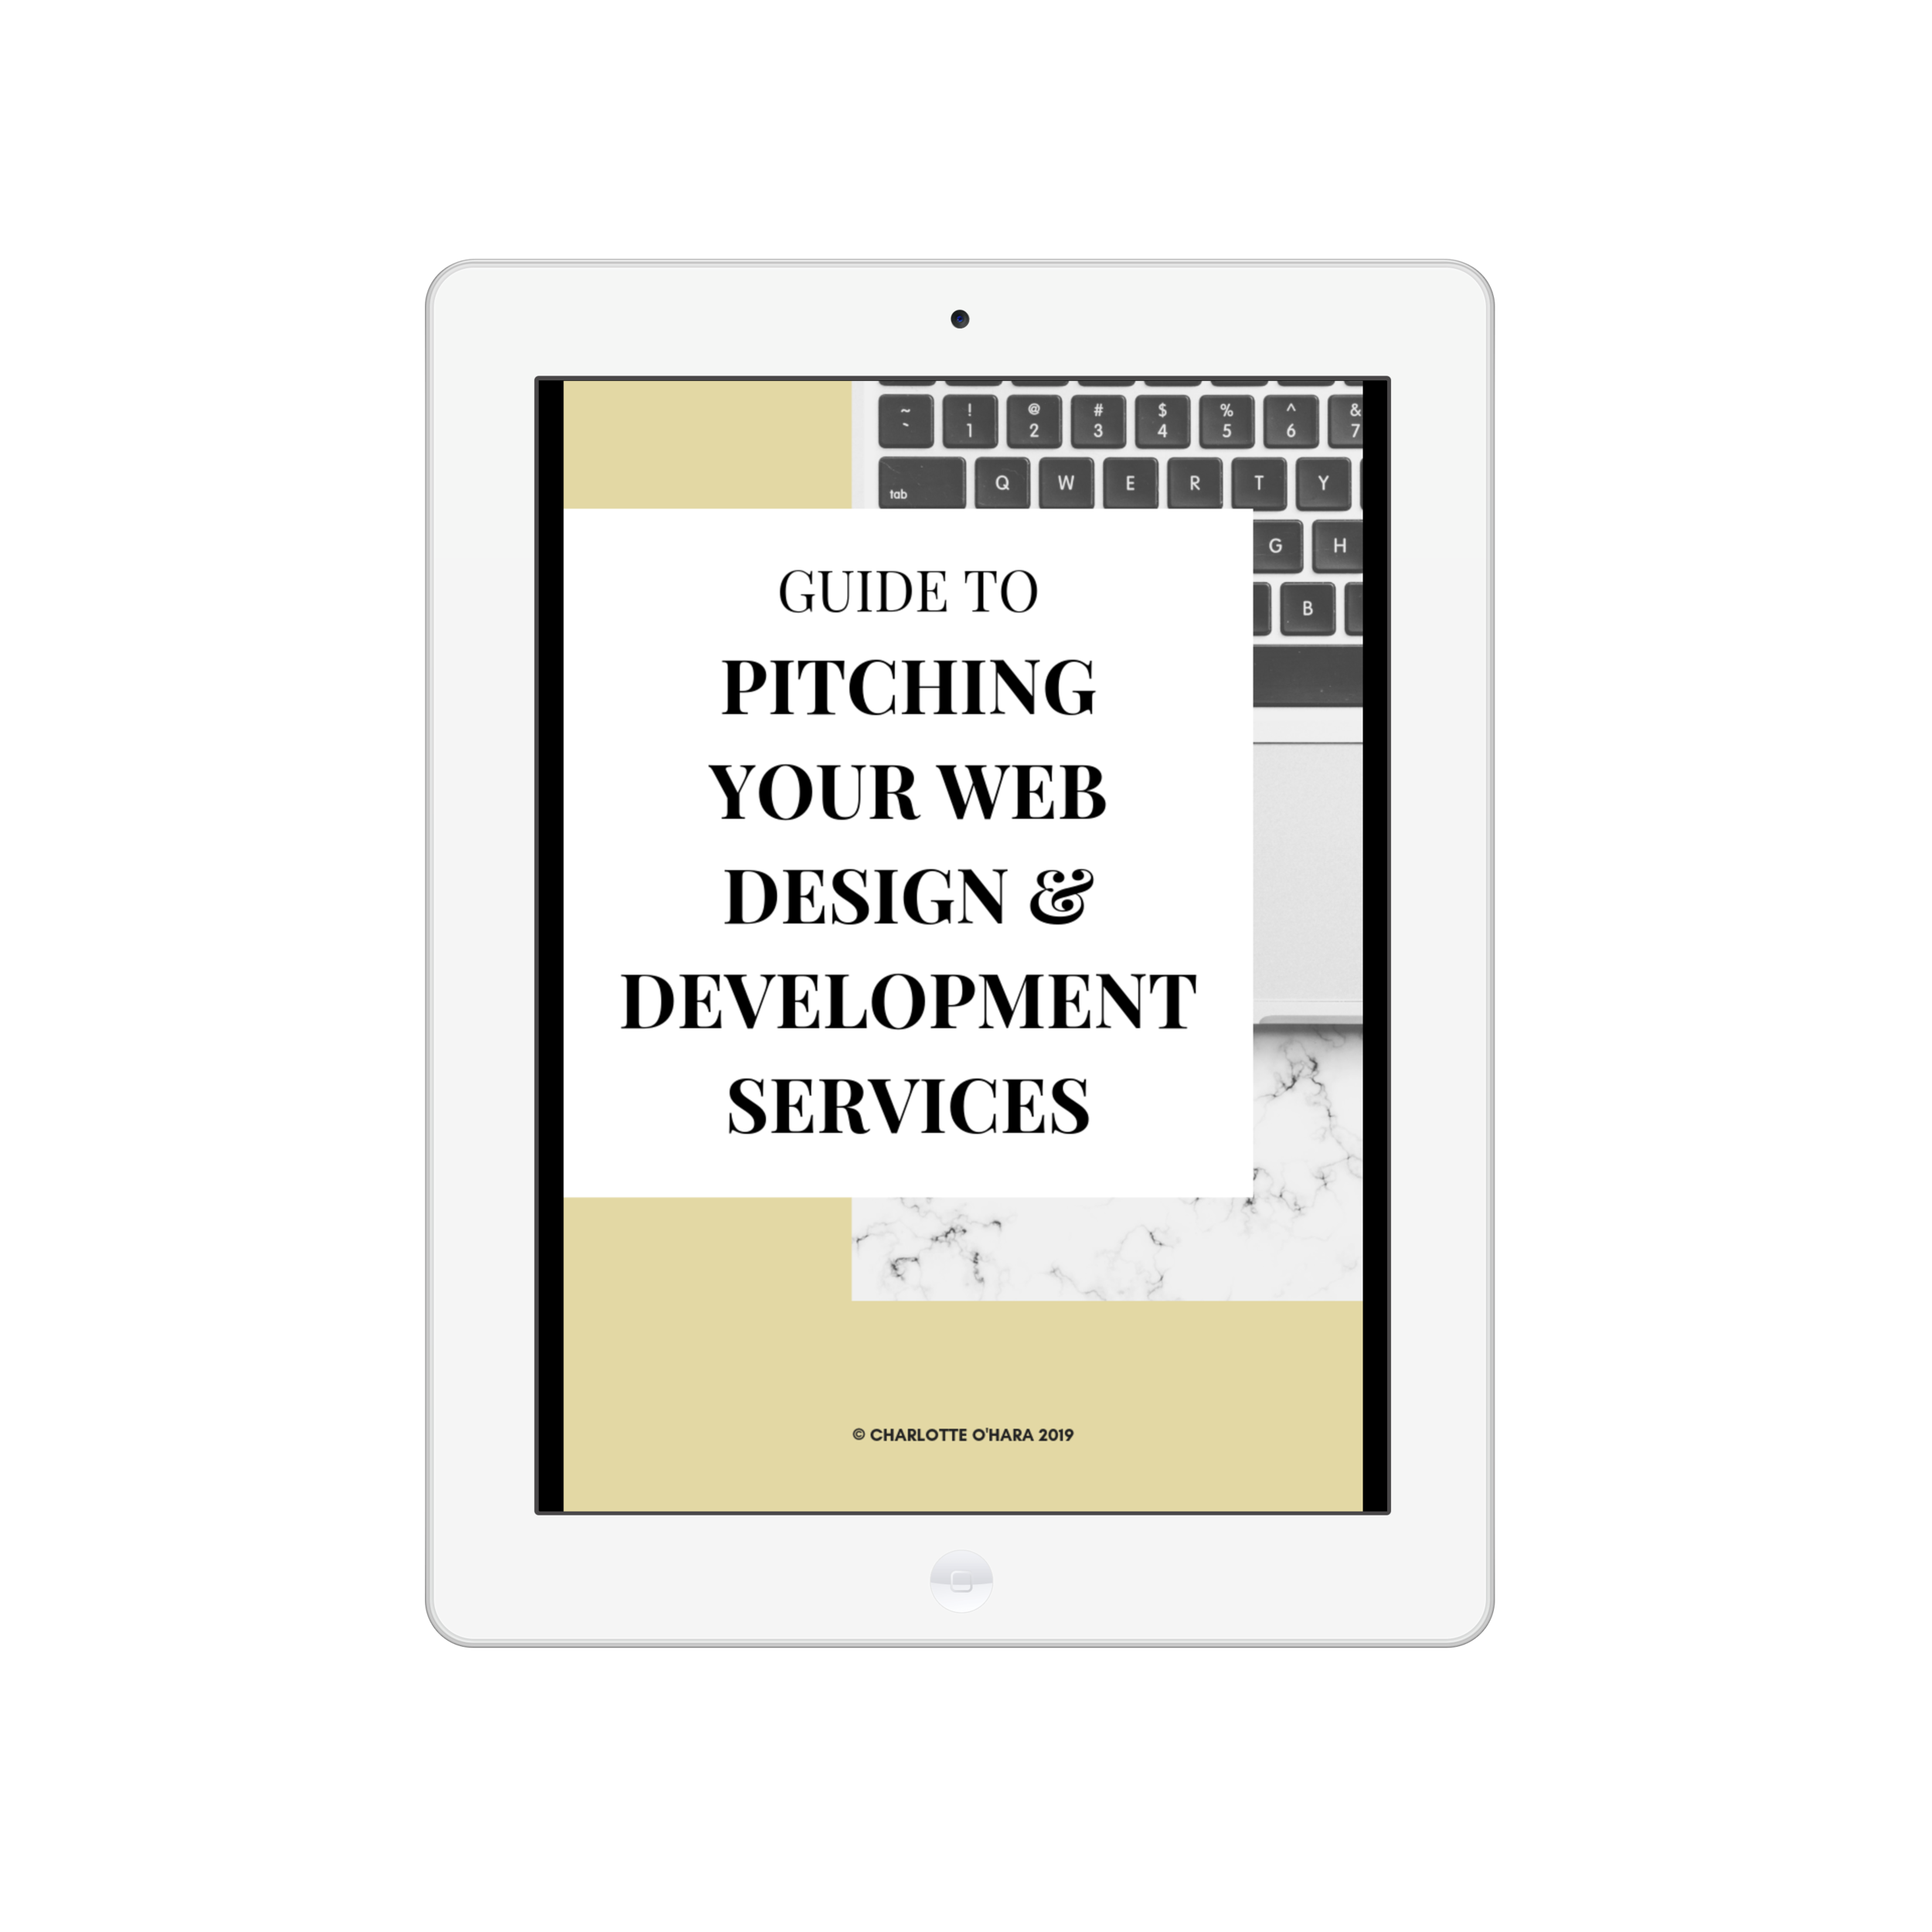 Guide to pitching your web design & development services | digital product | how to guide, email pitch templates, spreadsheet tracker